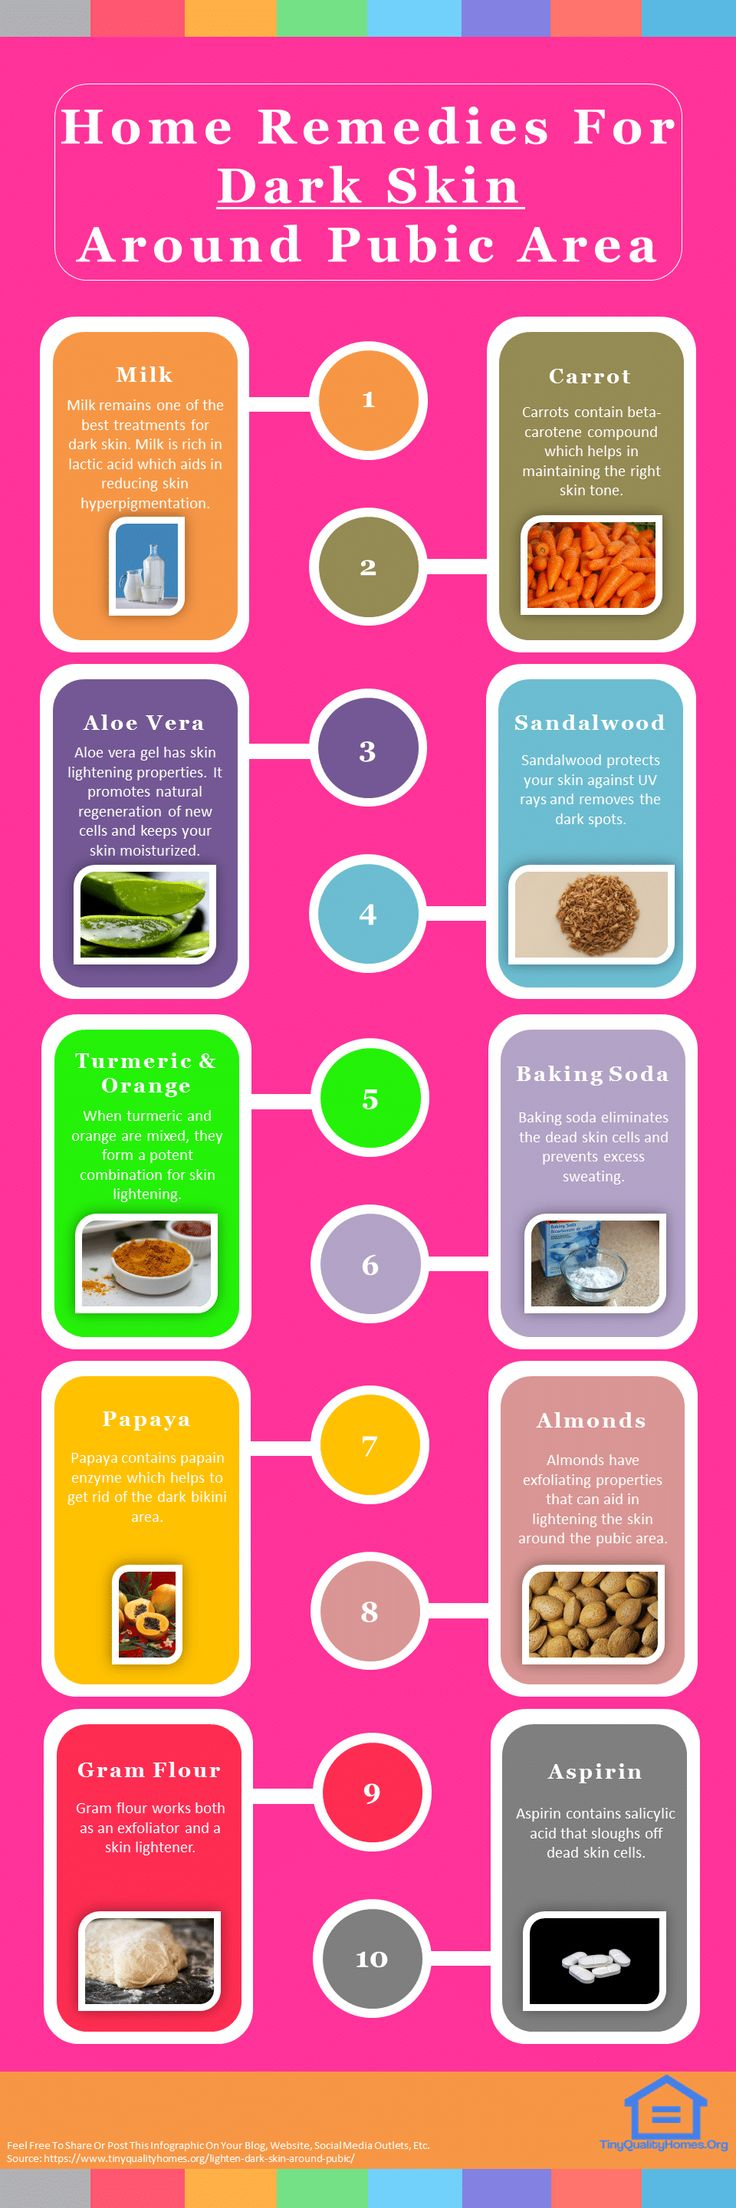 18 Home Remedies To Lighten Dark Skin Around Your Pubic Area: This Guide Shares Insights On The Following;  How To Whiten Groin Area Fast, How To Lighten Your Private Area, How To Whiten Intimate Areas Naturally, How To Lighten Private Body Parts At Home, Why Is My Pubic Area Dark After Shaving, Dark Groin Area Whitening Treatments, Groin Whitening Baking Soda, How To Whiten Groin And Buttocks, Lighten Dark Skin Around Pubic Area, Etc.